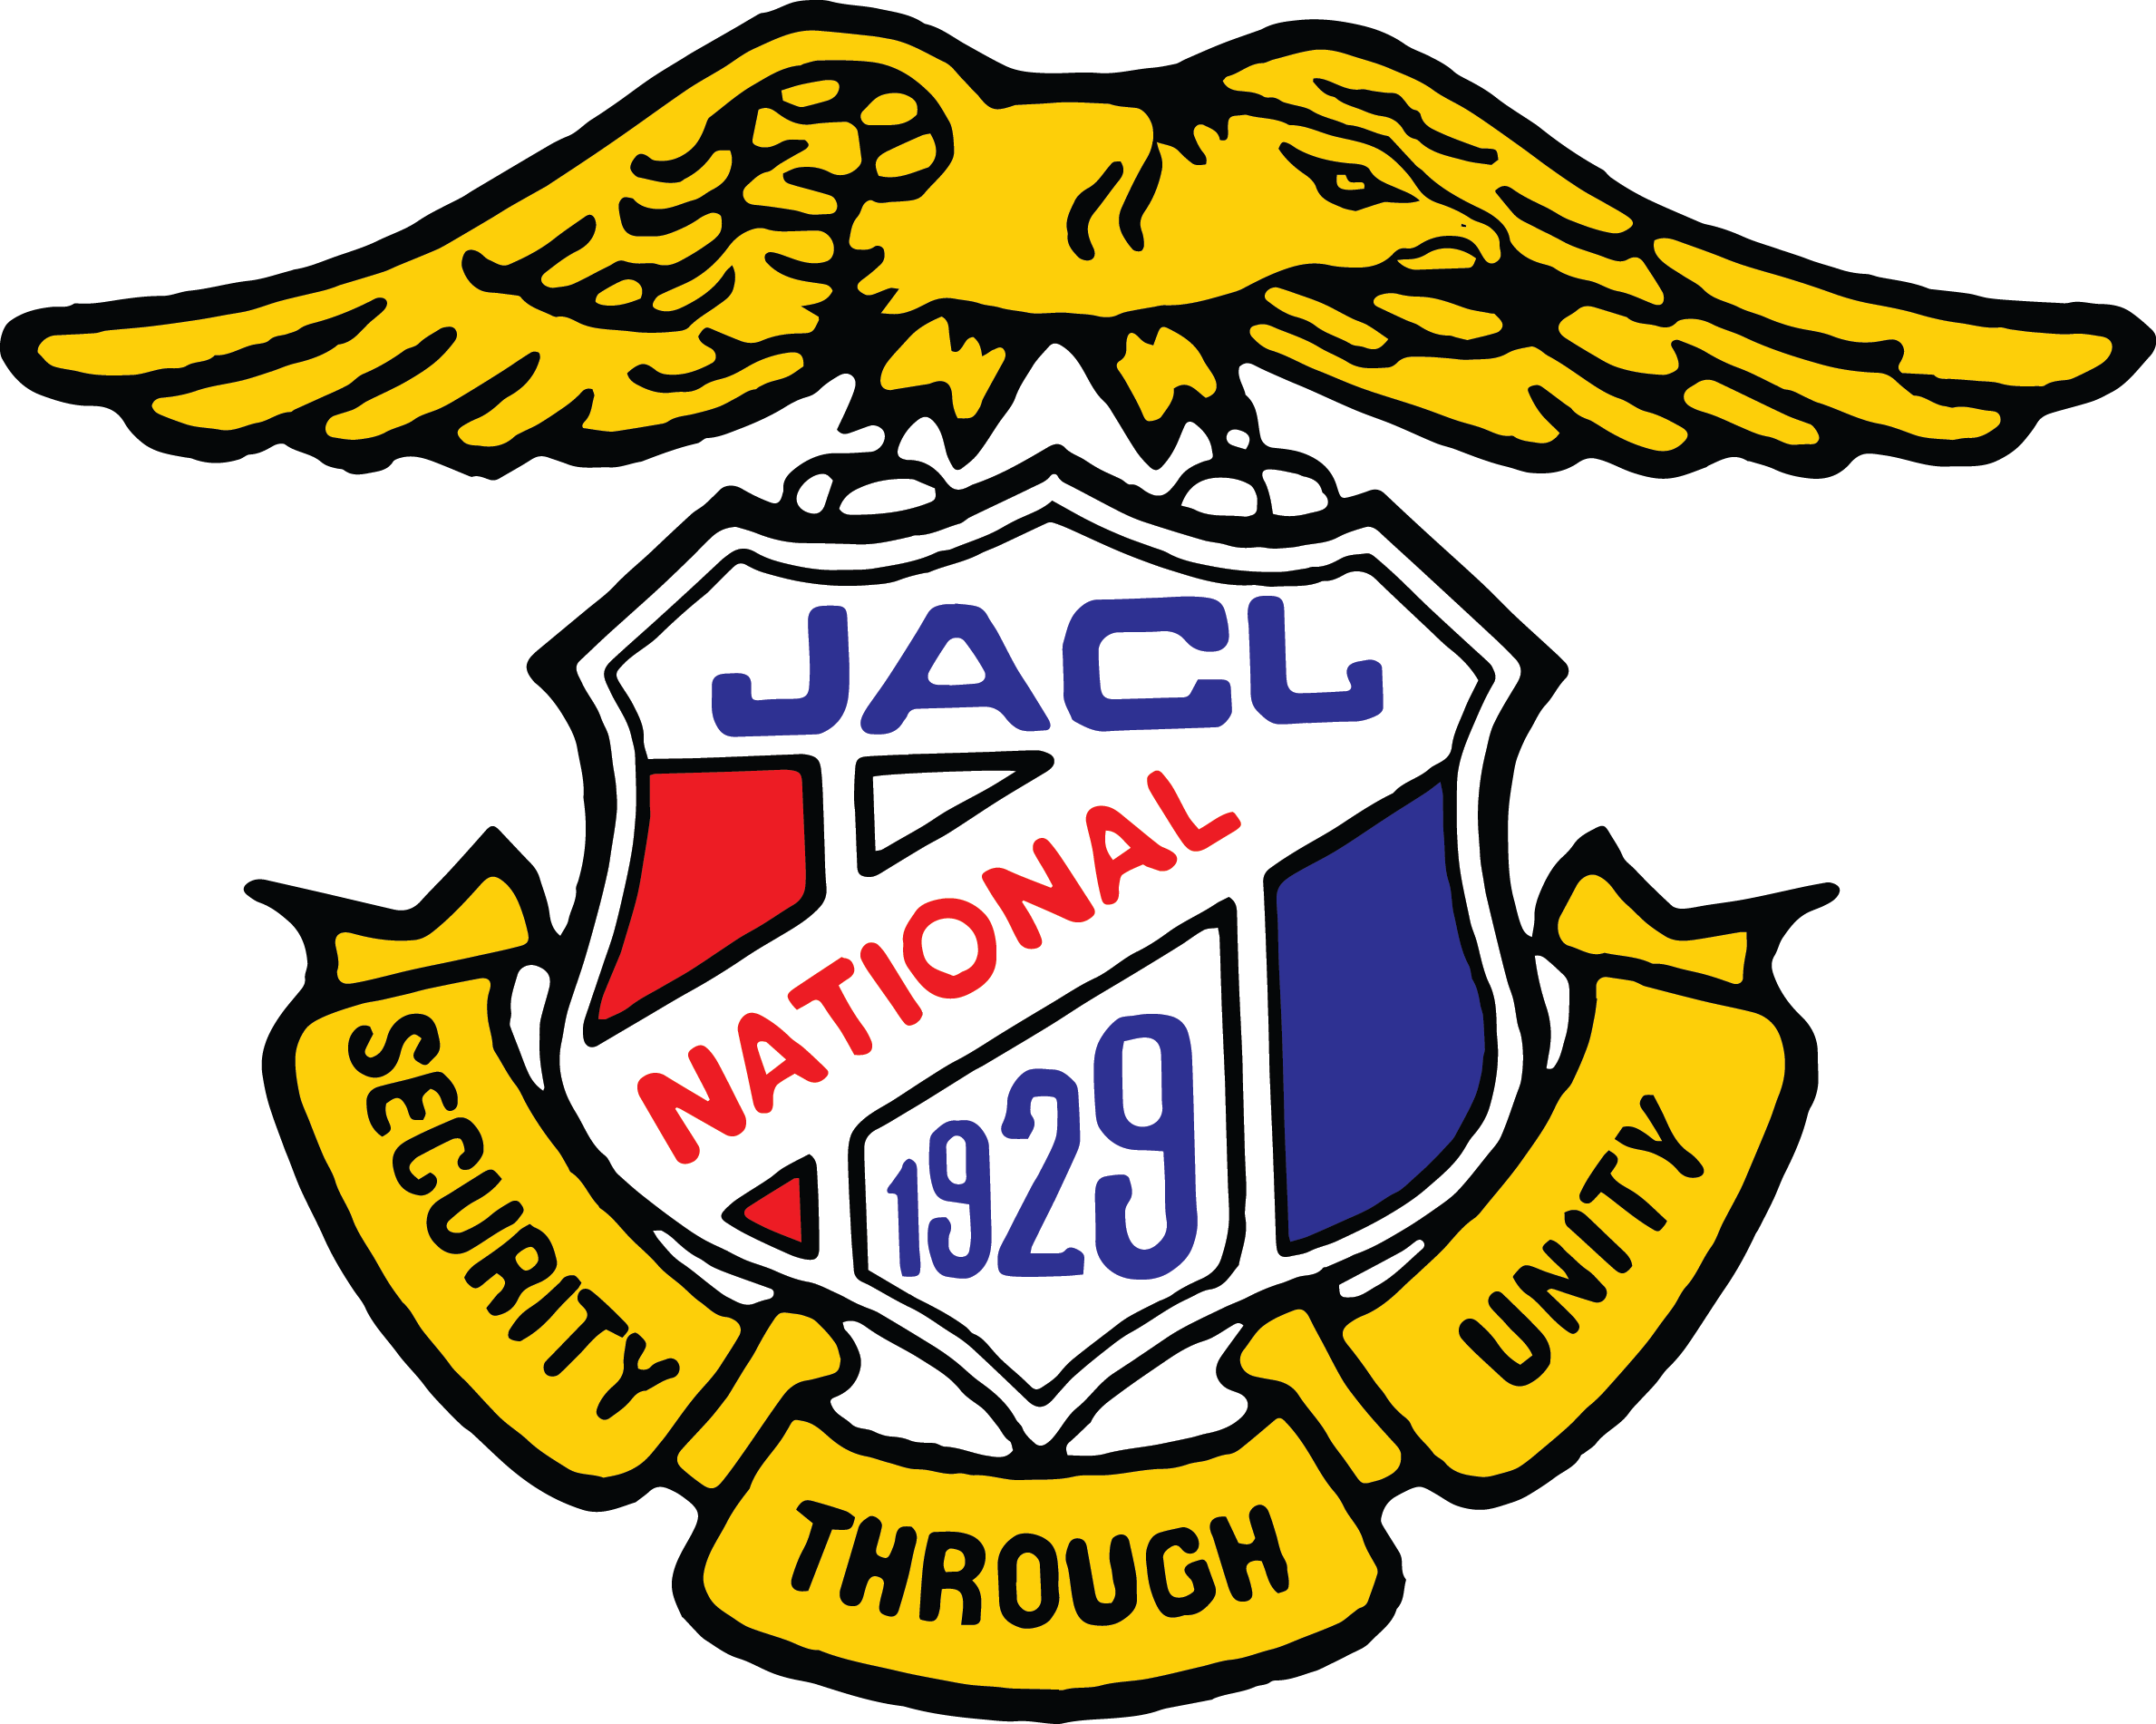 About JACL National -